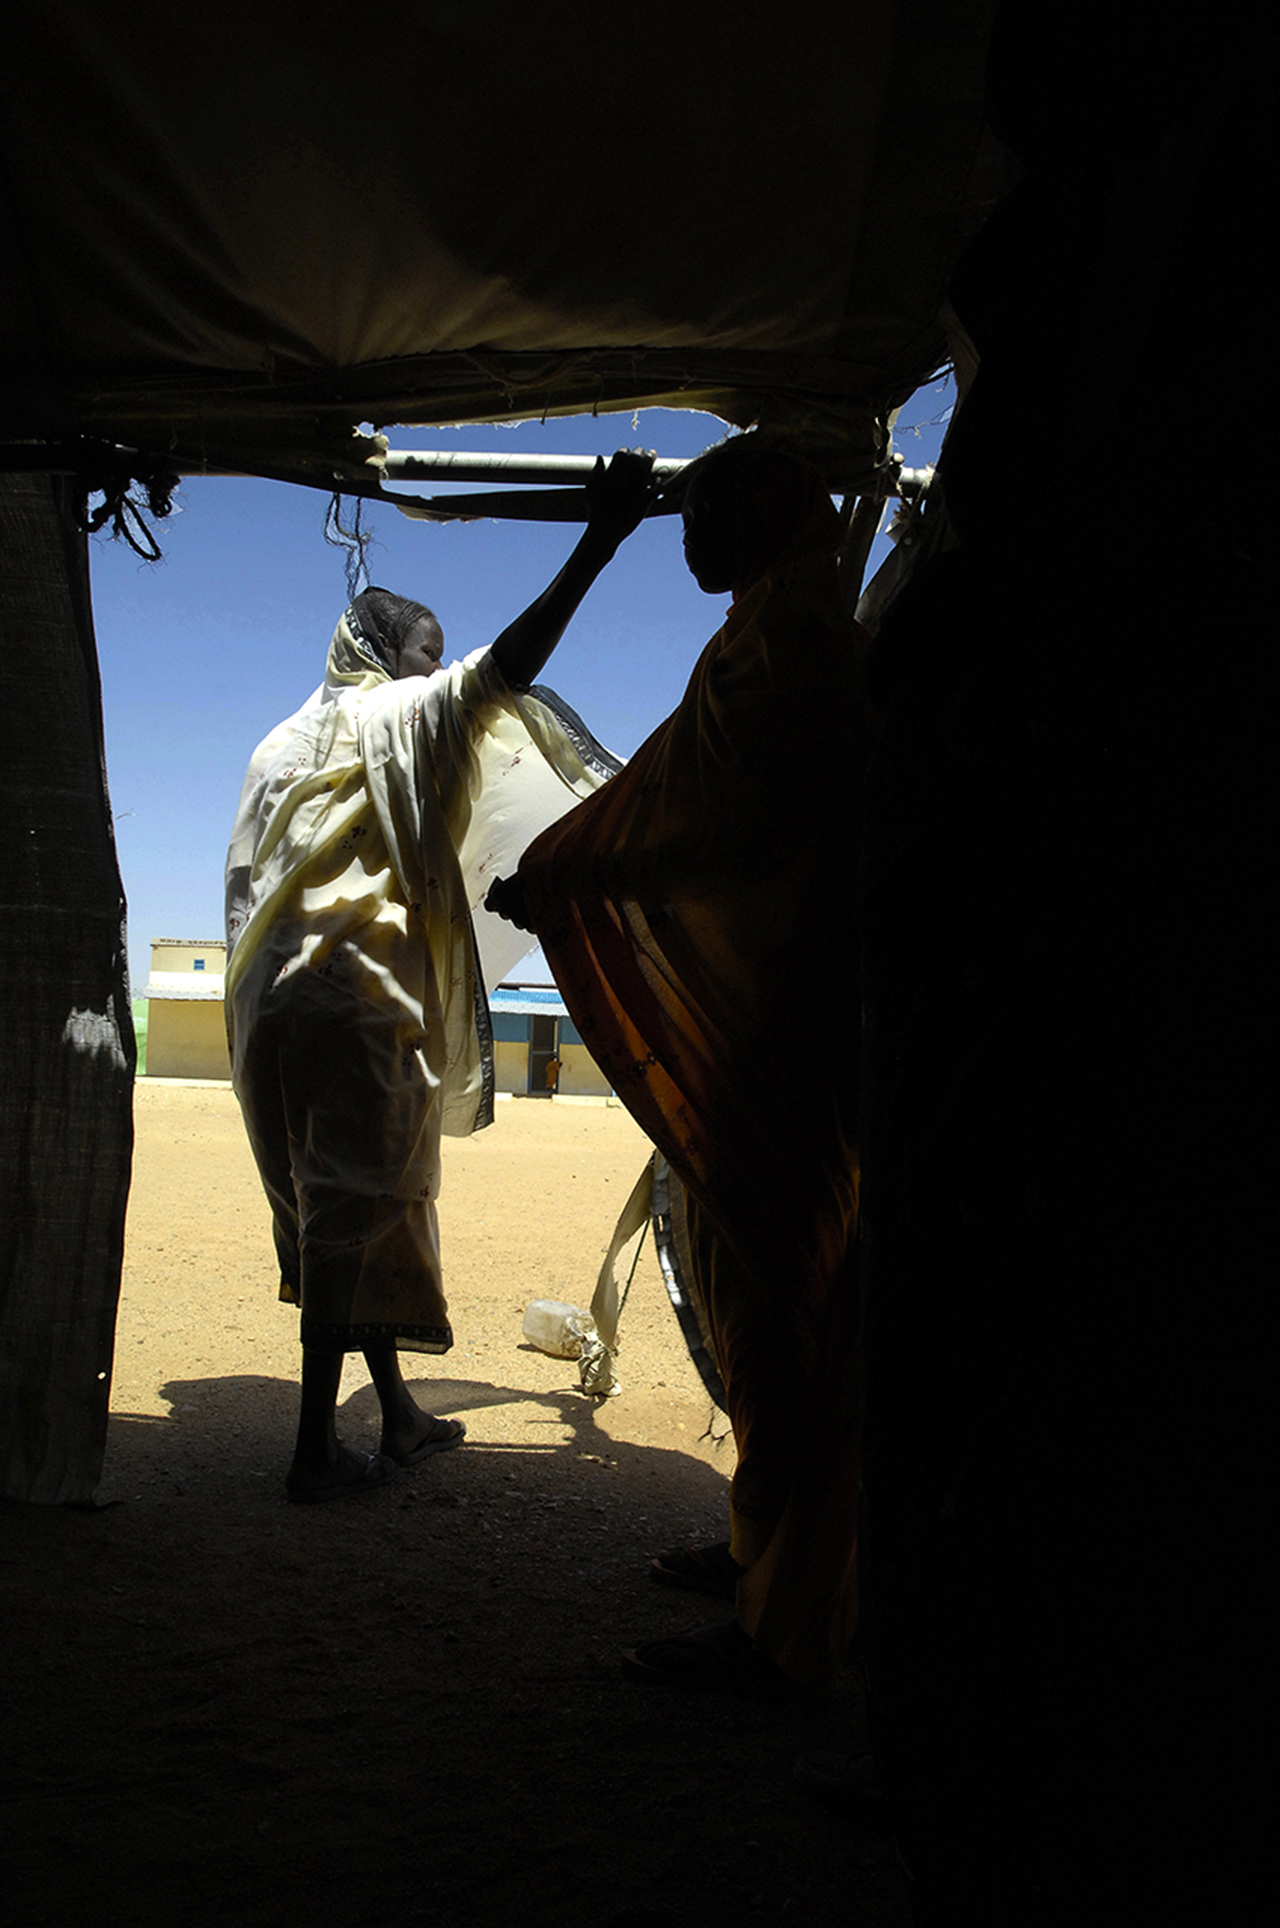 Entrance of a tent for health care in the medical center of Kounoungo refugee camp in Chad.